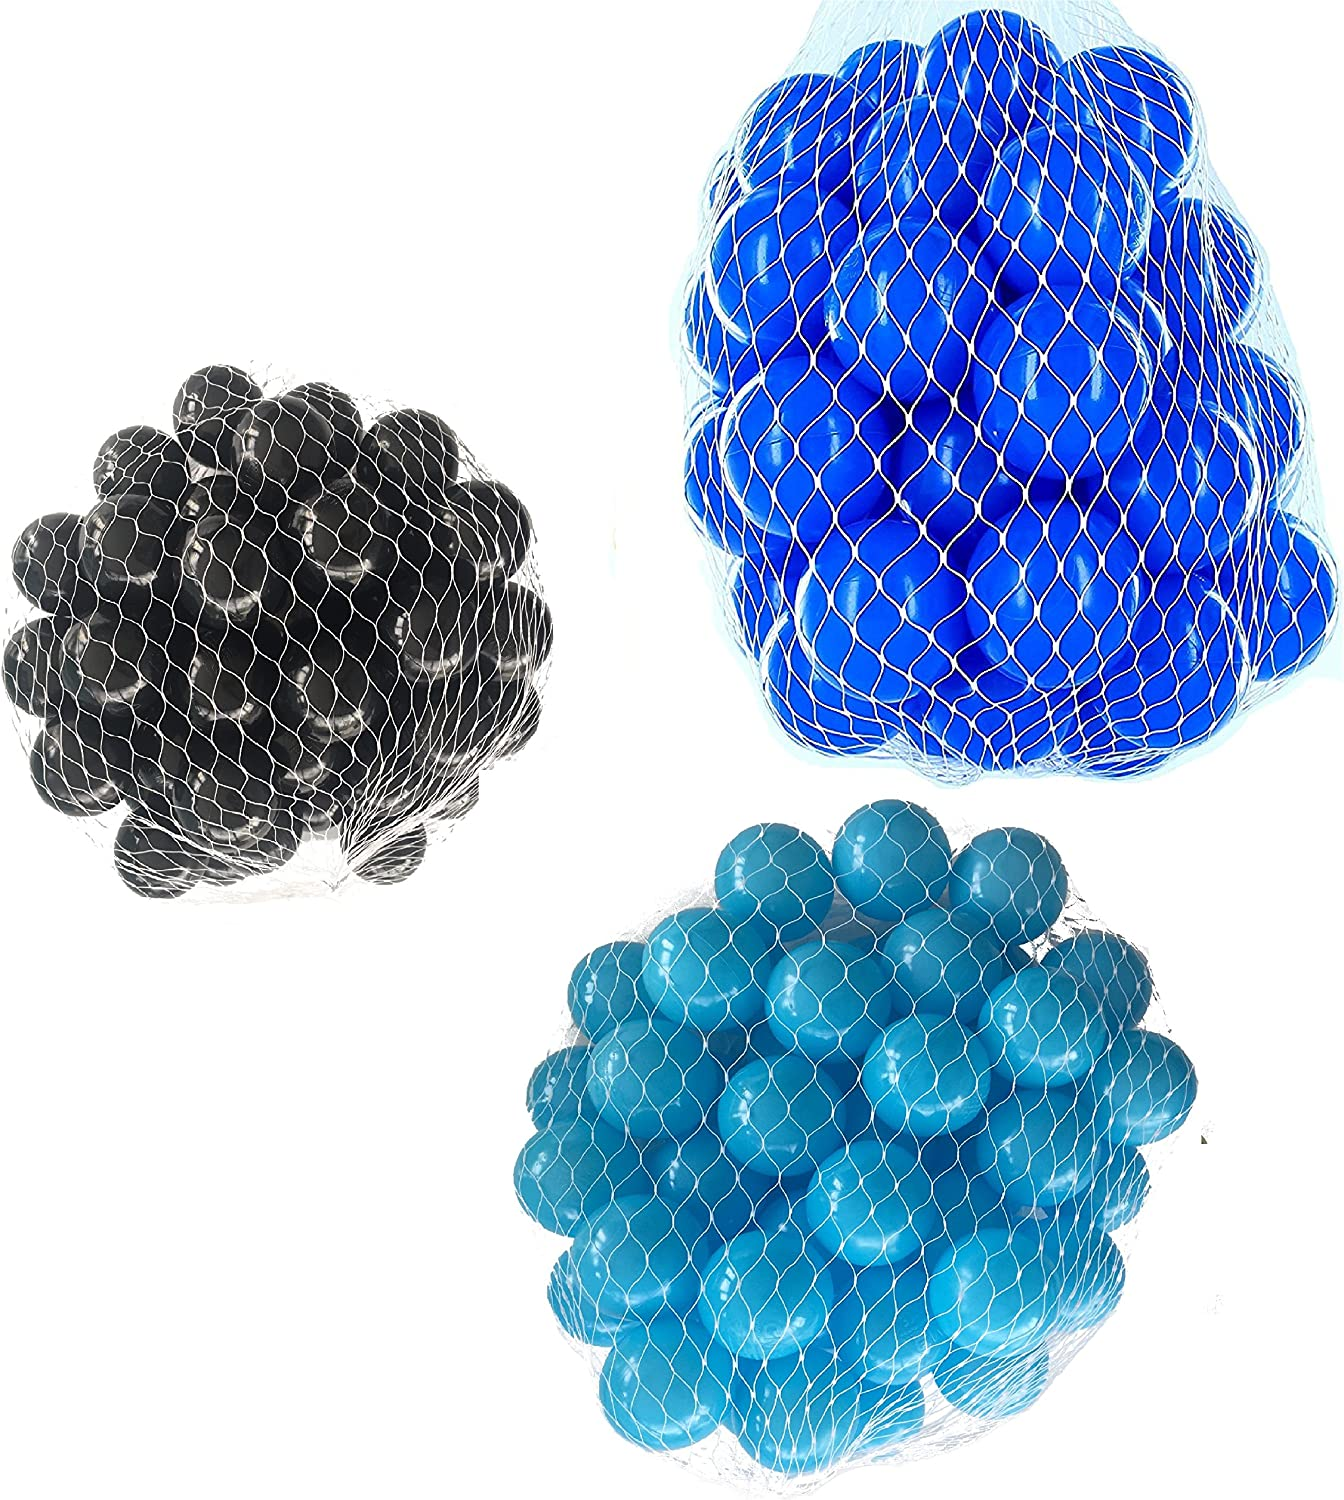 Balls For Ball Pool Mix Set with Turquoise, bluee bluee